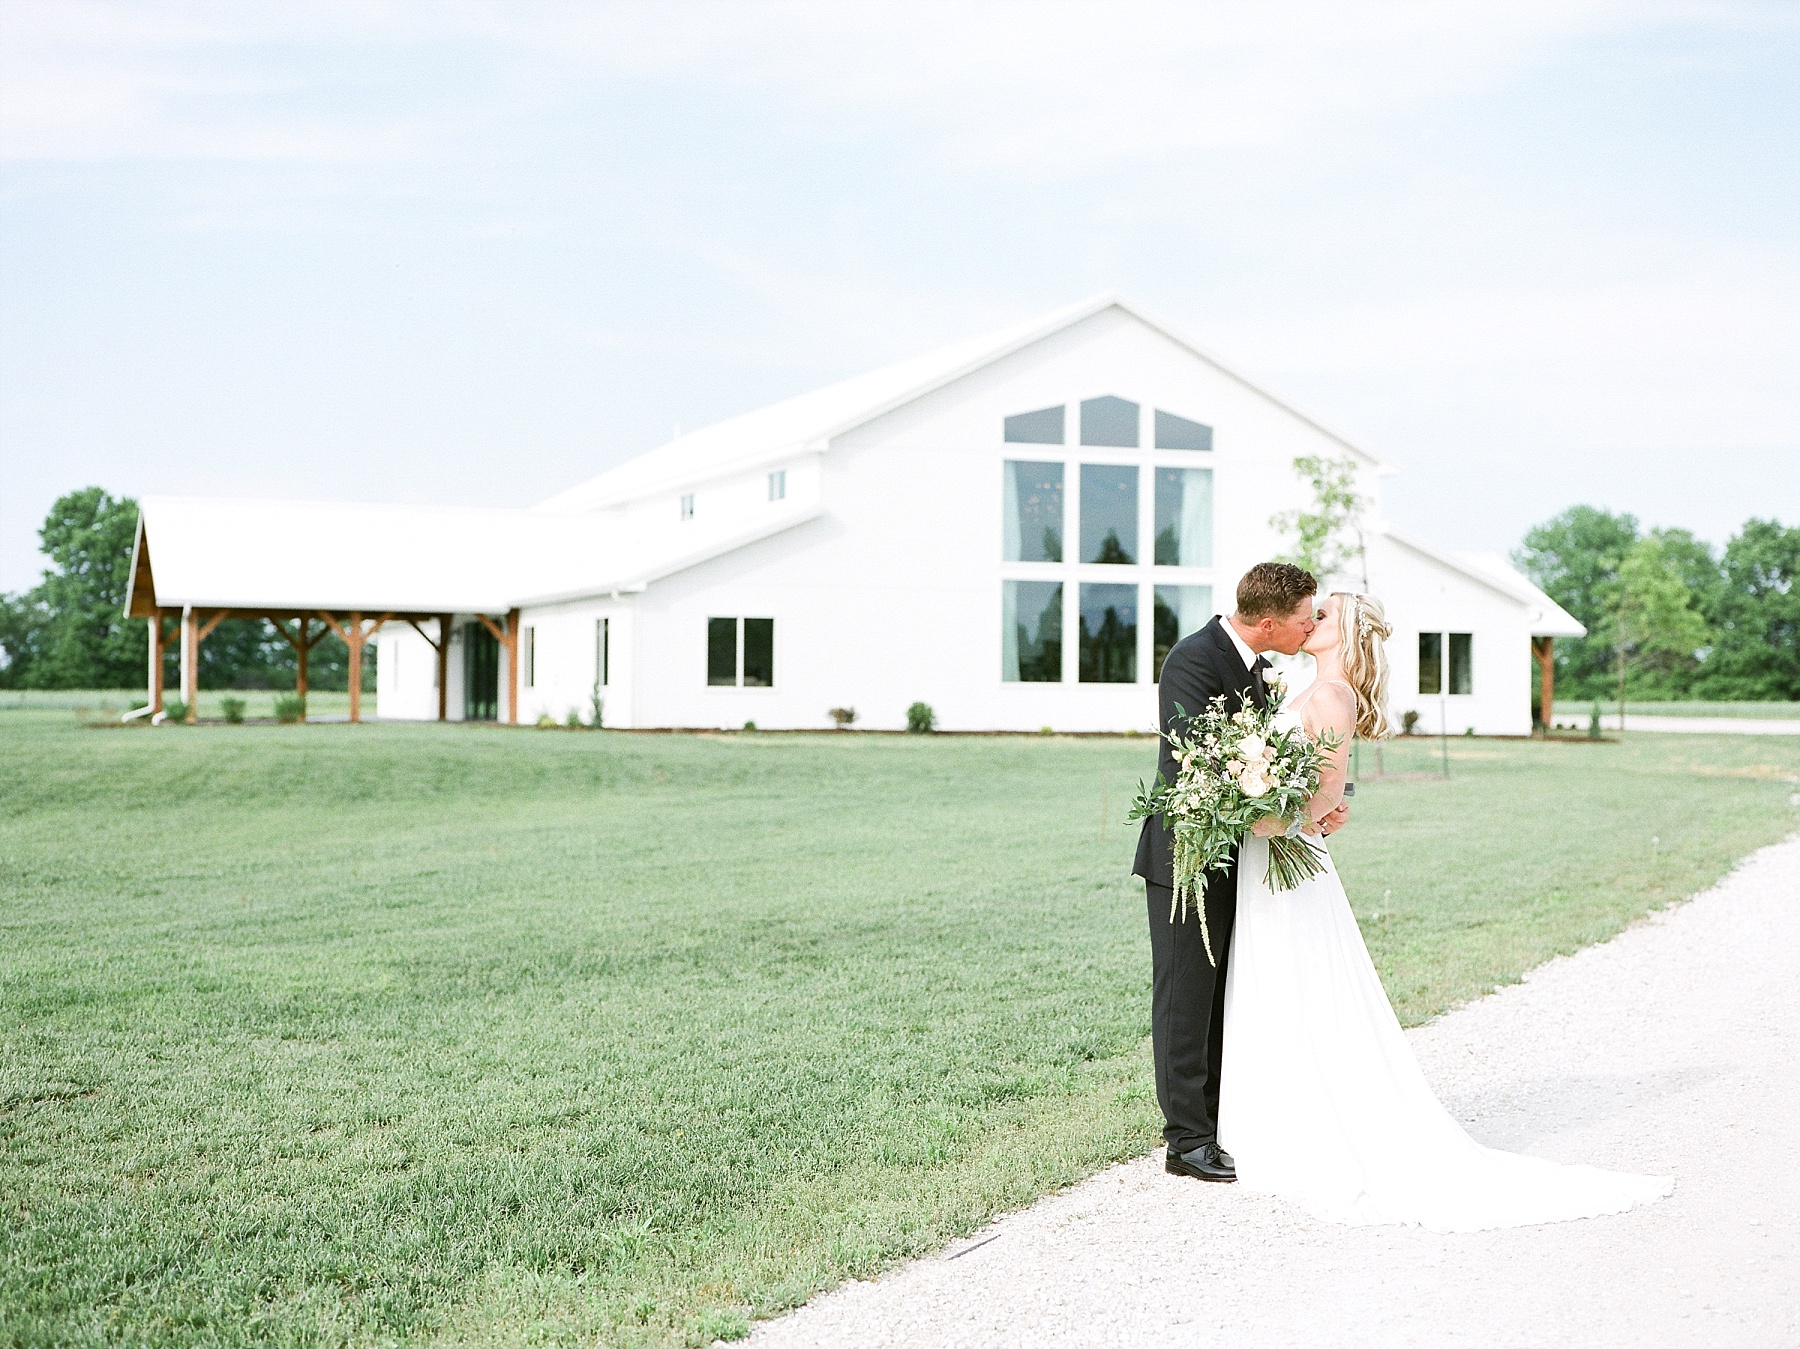 Textural Organic Wedding in All White Venue by Kelsi Kliethermes Wedding Photographer - Missouri, Midwest, and Destinations_0058.jpg